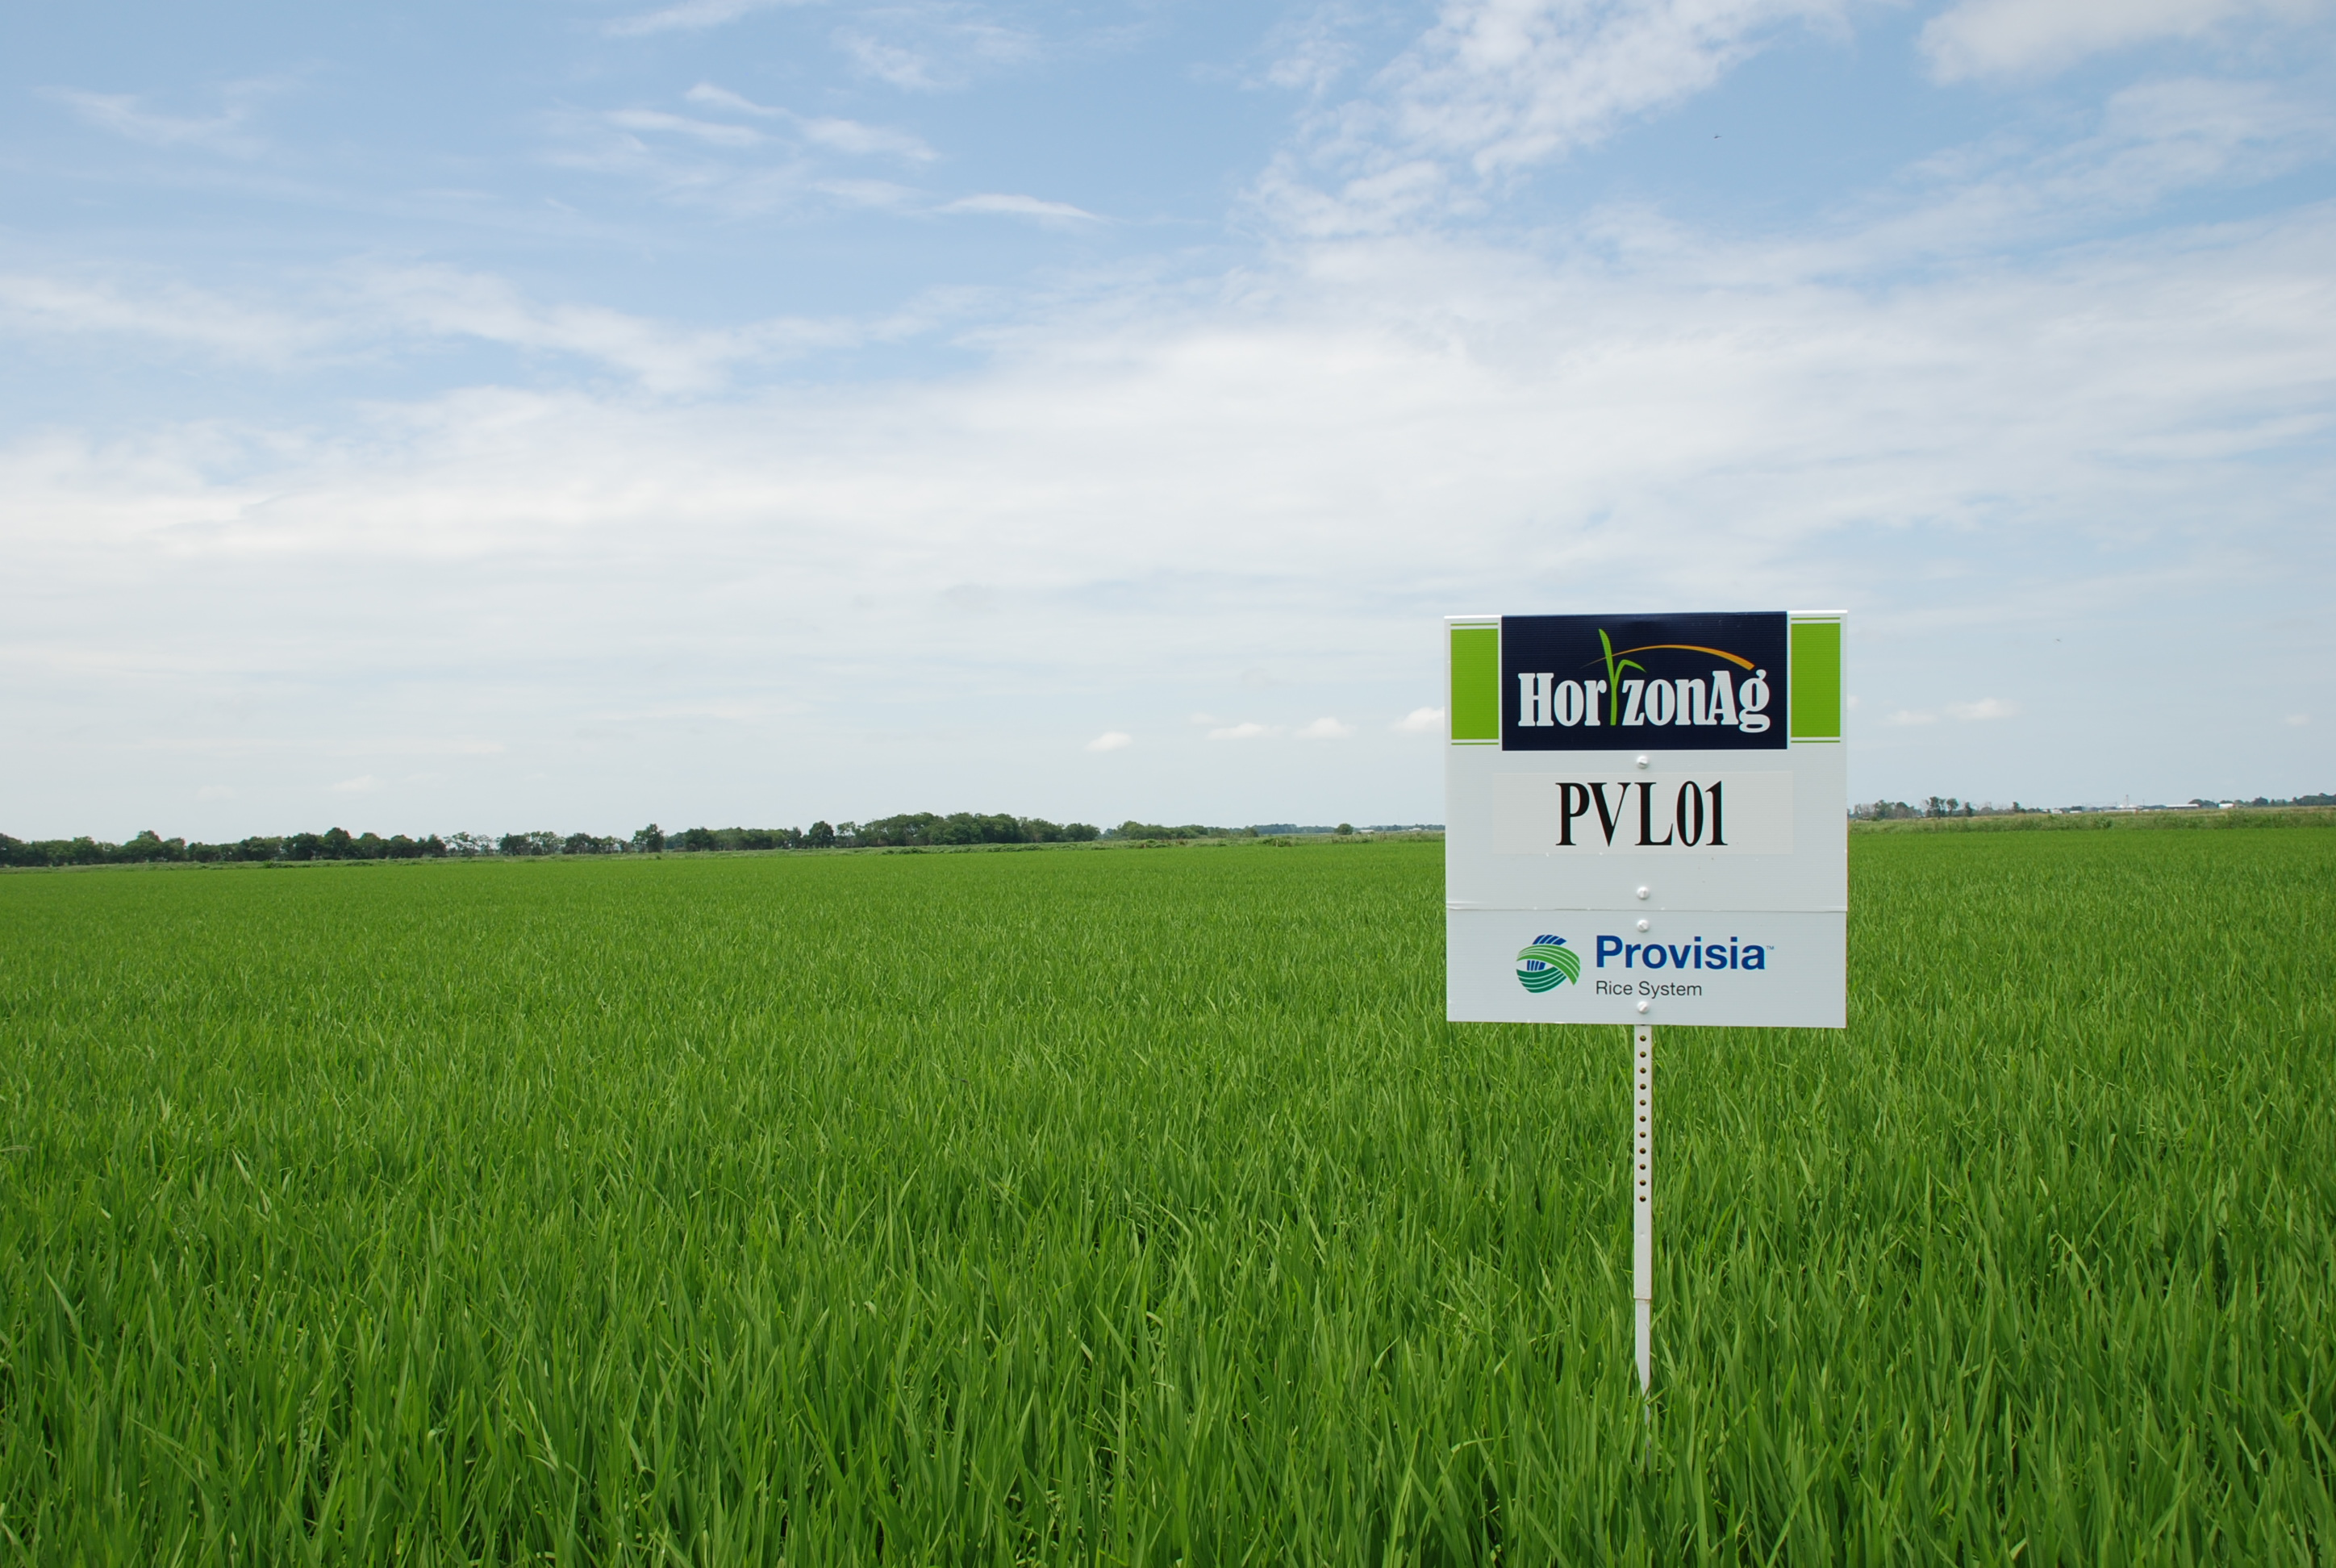 17-9 Provisia production field.JPG thumbnail